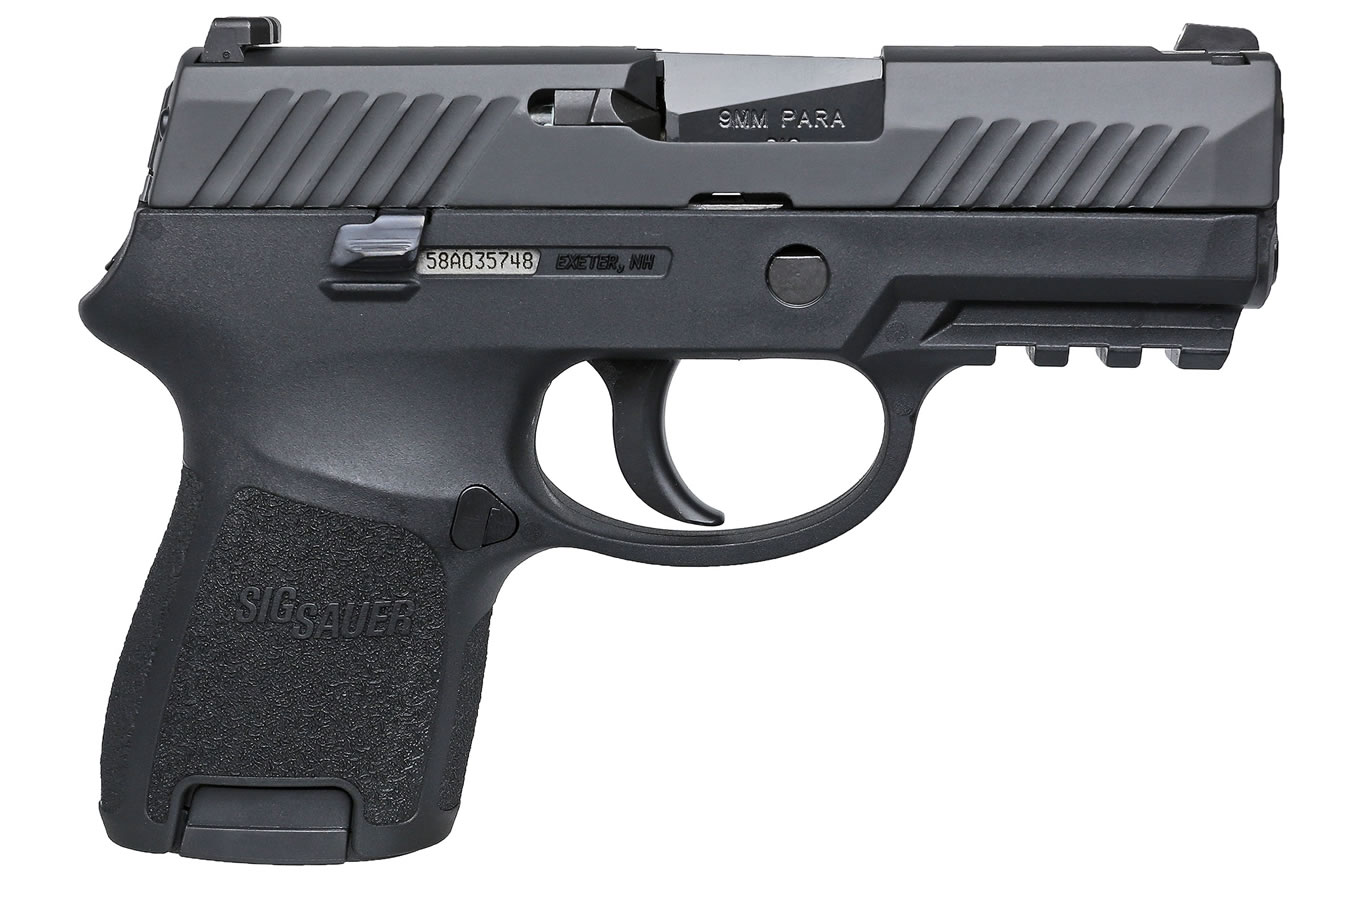 Sig Sauer P320 Subcompact 9mm With Rail Vance Outdoors